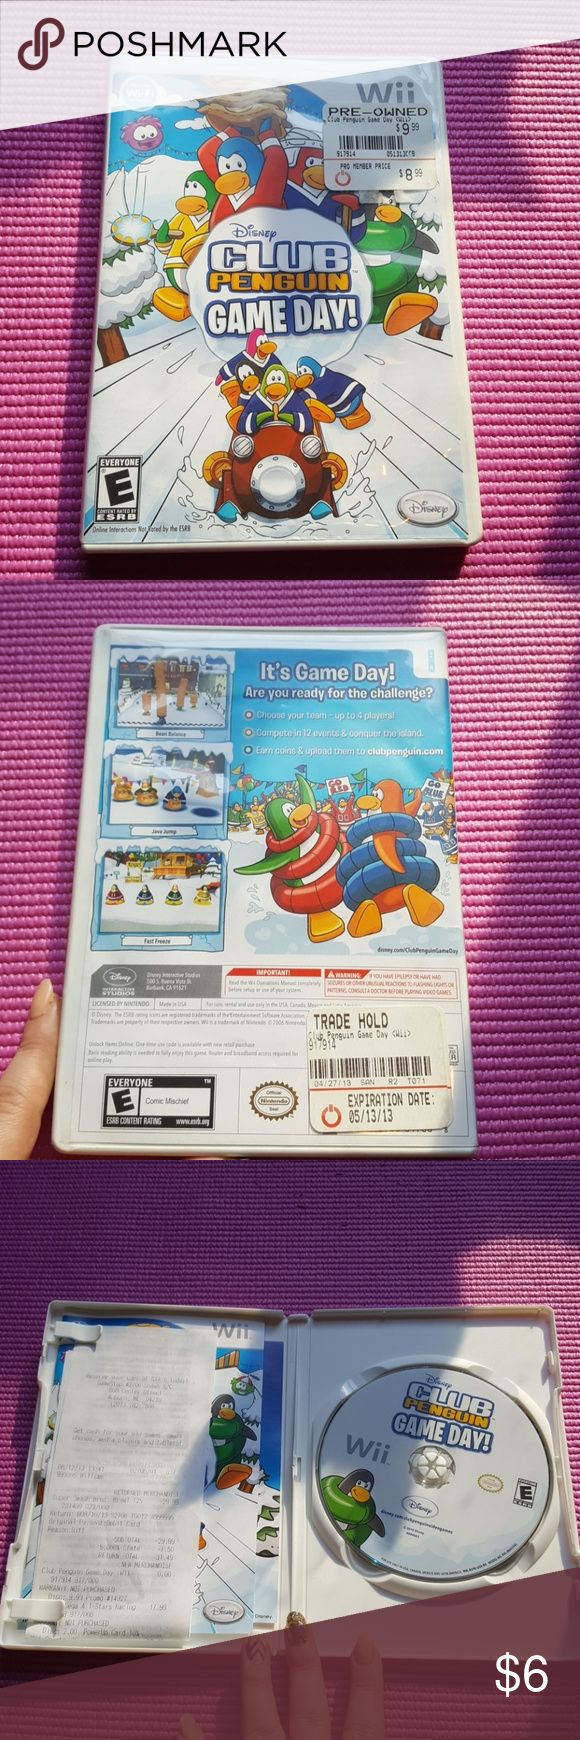 Wii Disney Club Penguin Game Day game Wii Disney Club Penguin game day game. Compatible with Nintendo WiFi connection. Rated E for everyone. Purchase as pre owned works perfectly. Disney Other